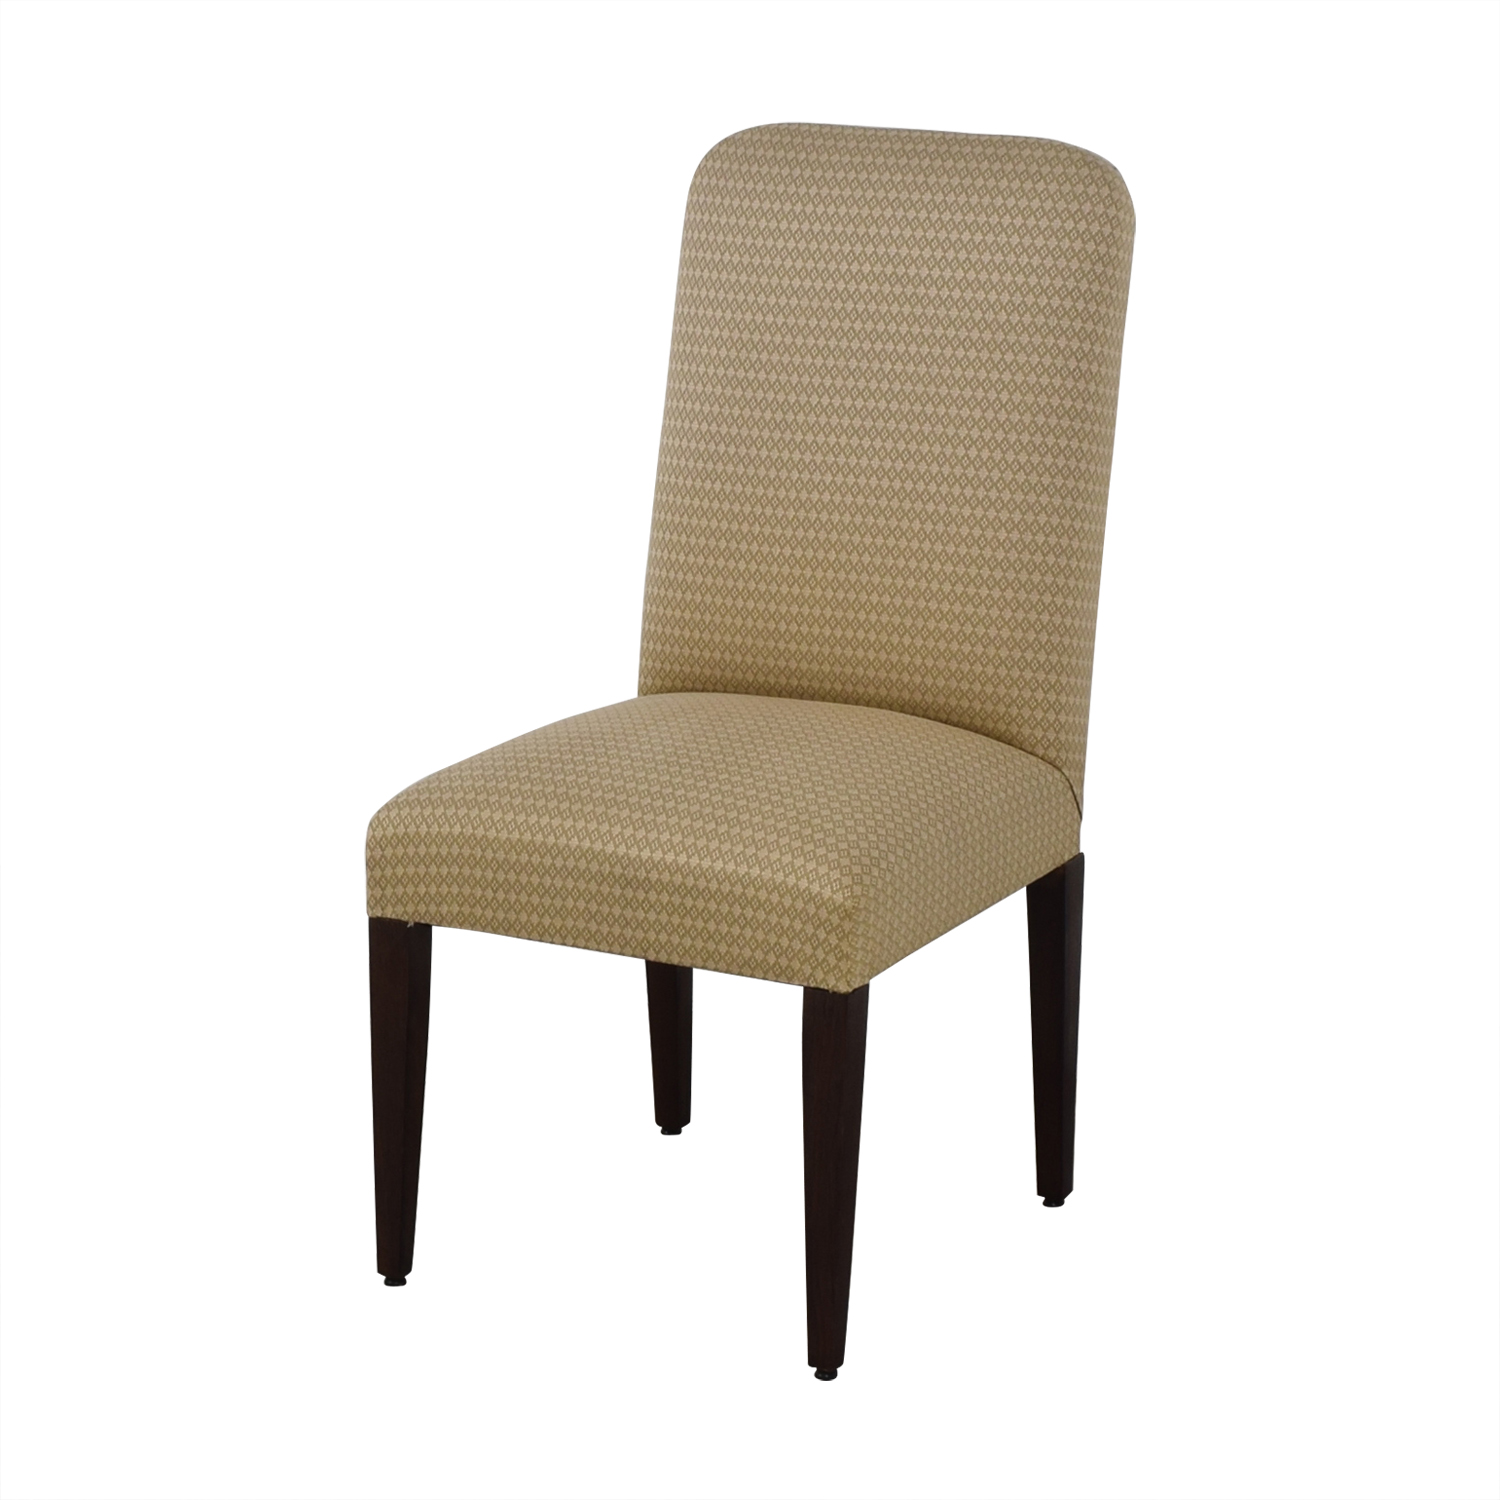 Furniture Masters Furniture Masters Tan Accent Chair discount